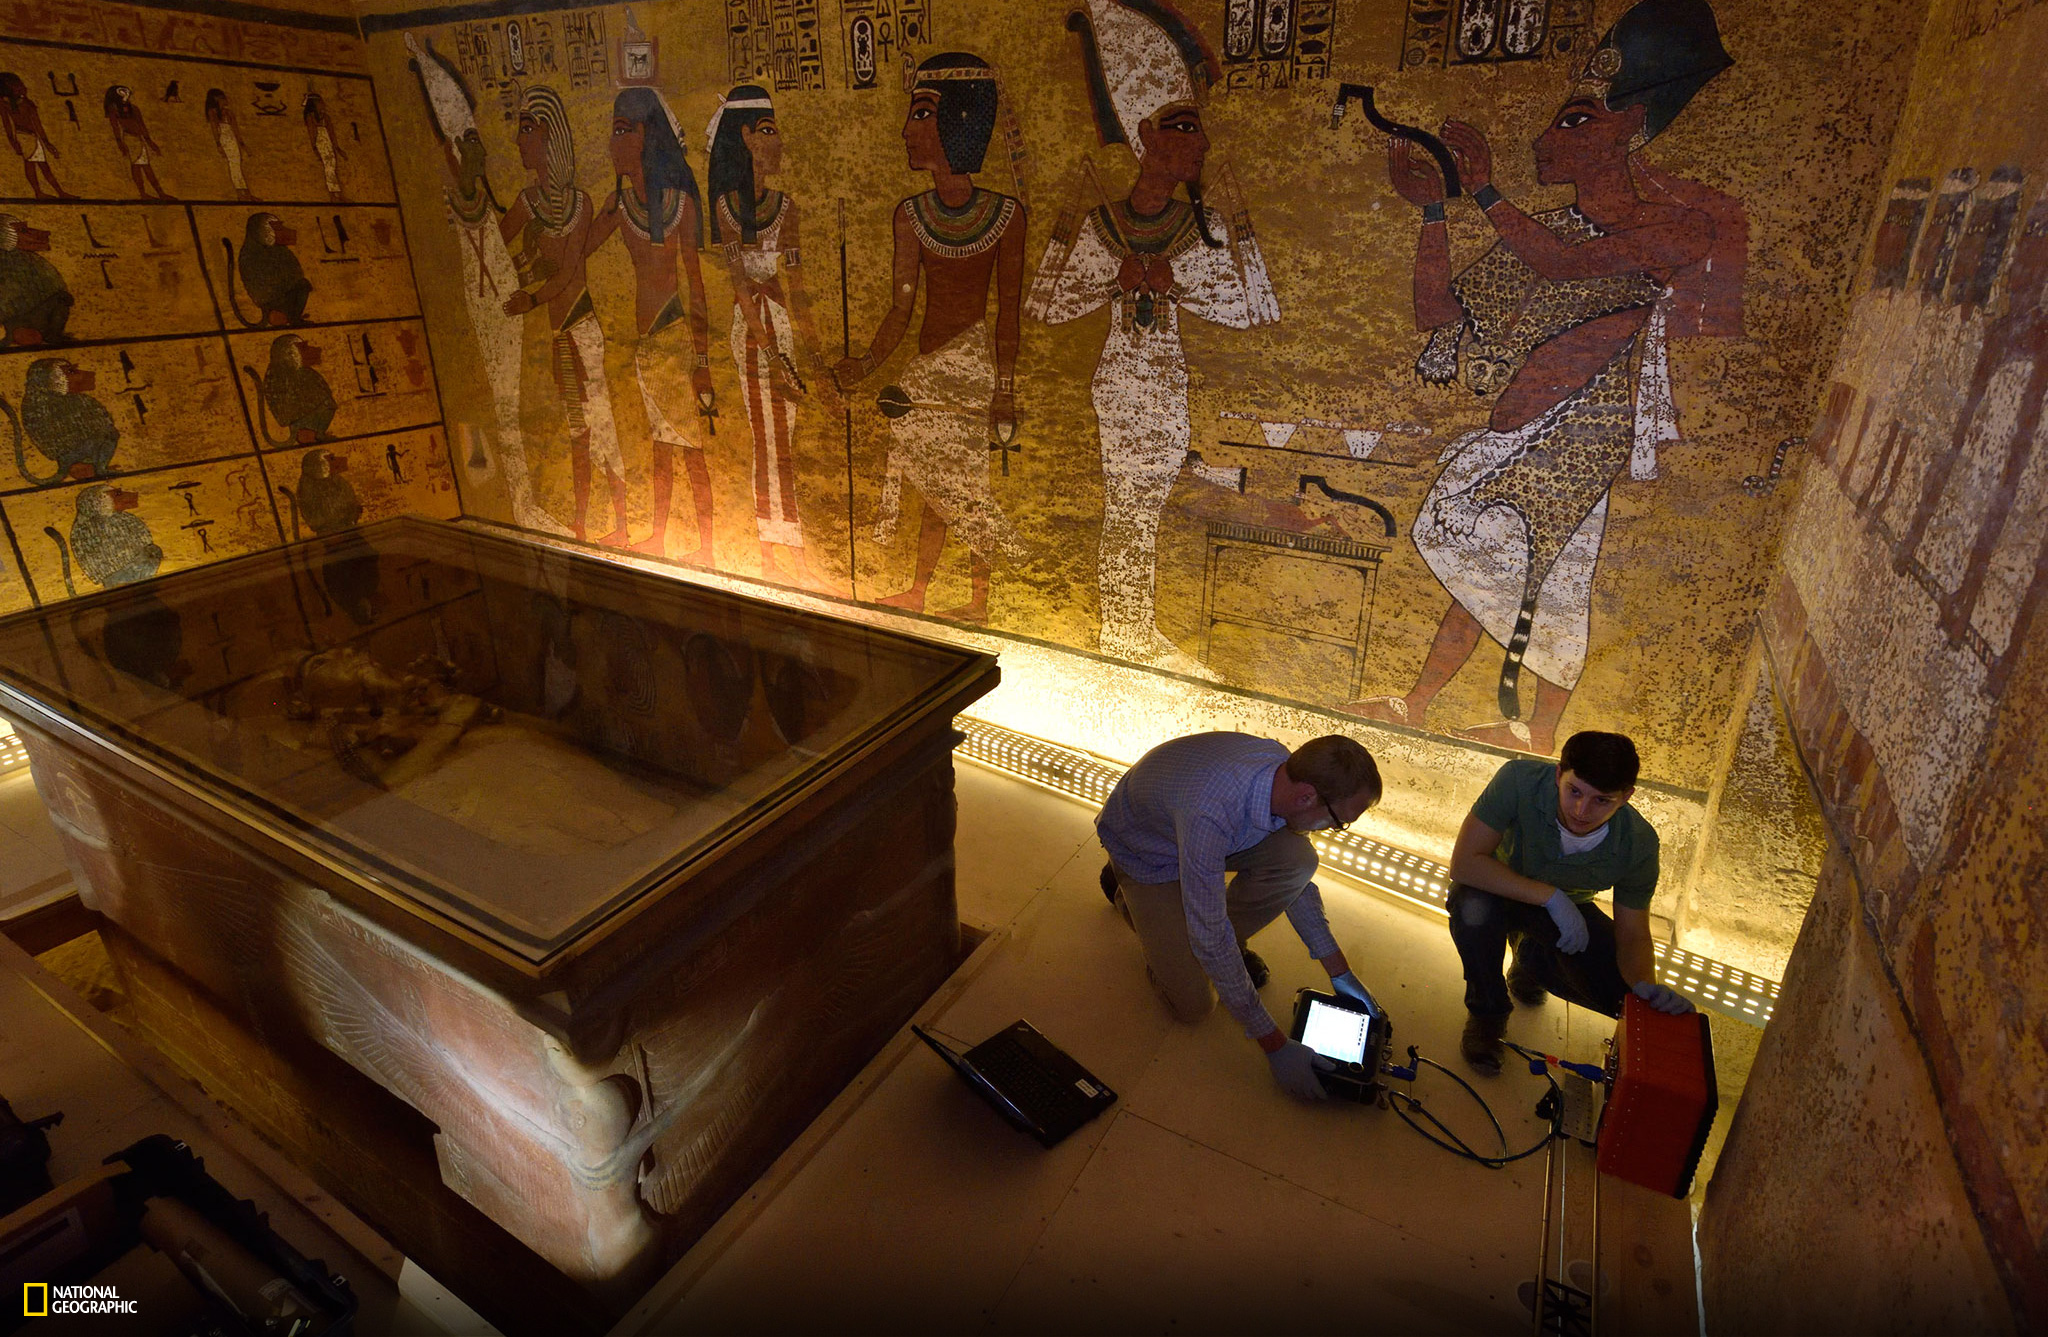 an analysis of the egyptian concern for the afterlife reflected in the tomb of tutankhamen On the surface, the fact that the canopic shrine is unique to tutankhamun's burial suggests that from a functionalist point of view, it could allude to something special about his reign or exceptional about egyptian society in the eighteenth dynasty period.